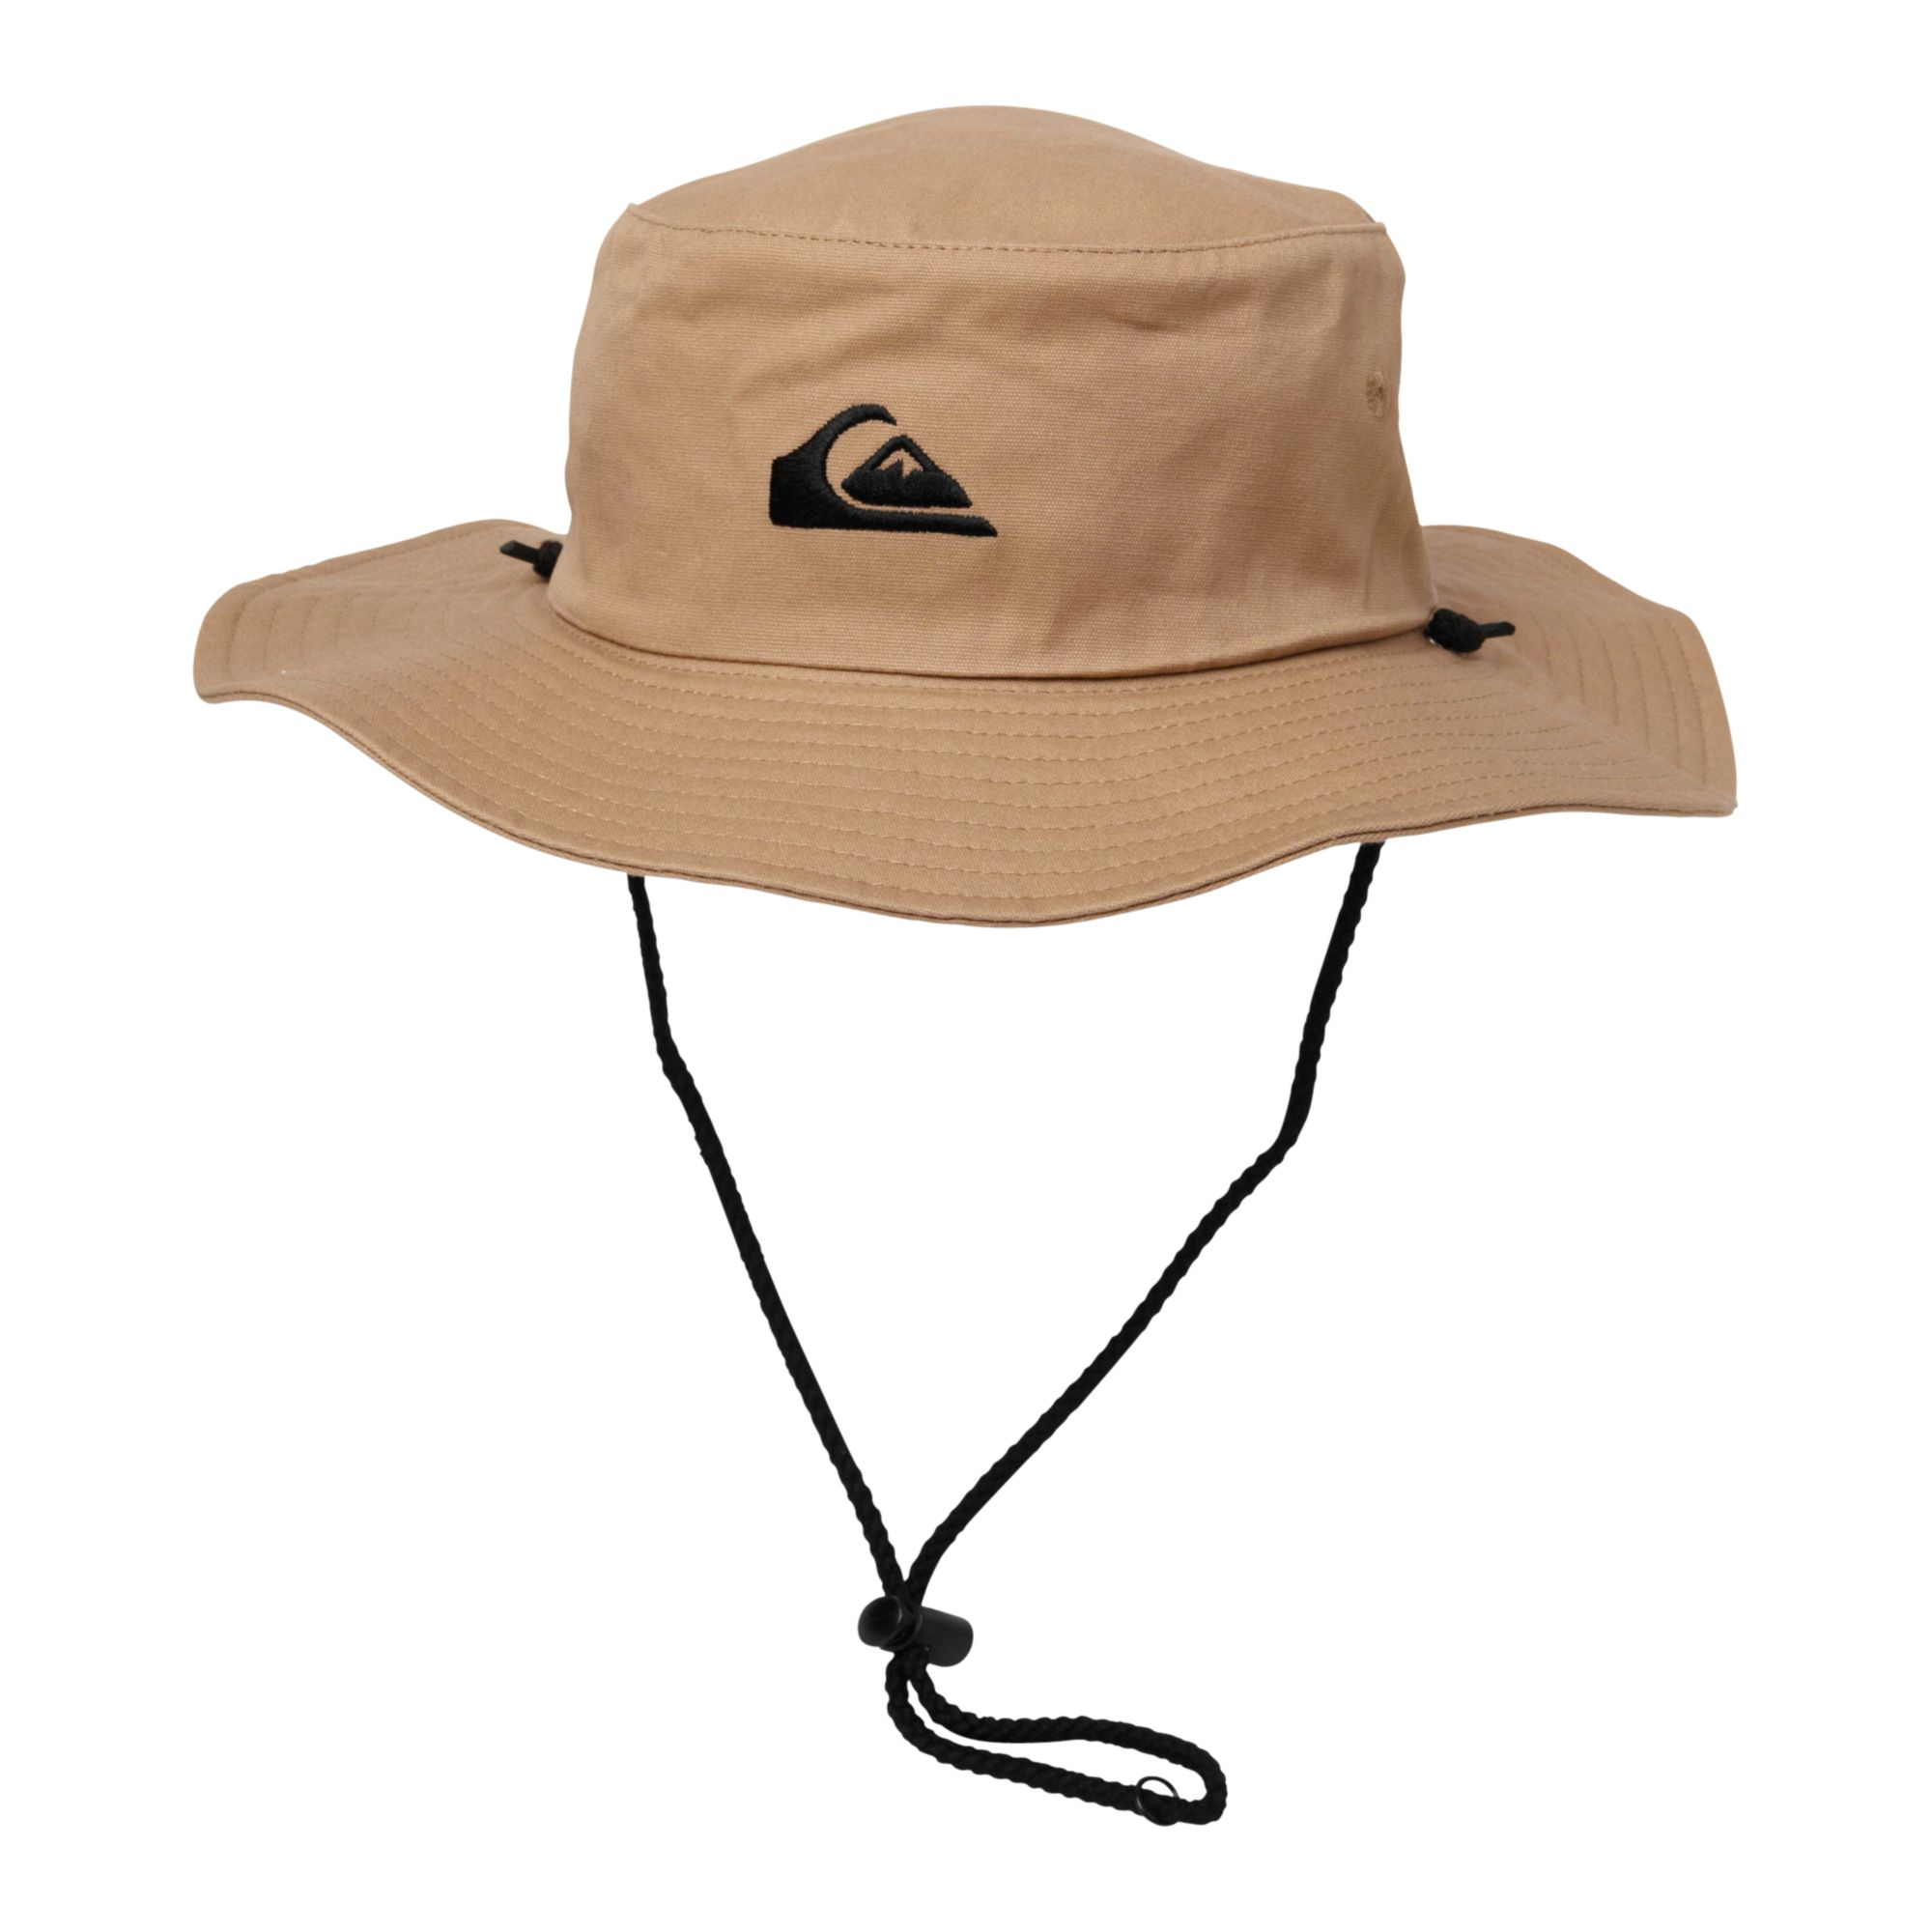 c55fd271a3c85c ... 50% off lyst quiksilver bushmaster hat in natural for men 4d2b6 f767a